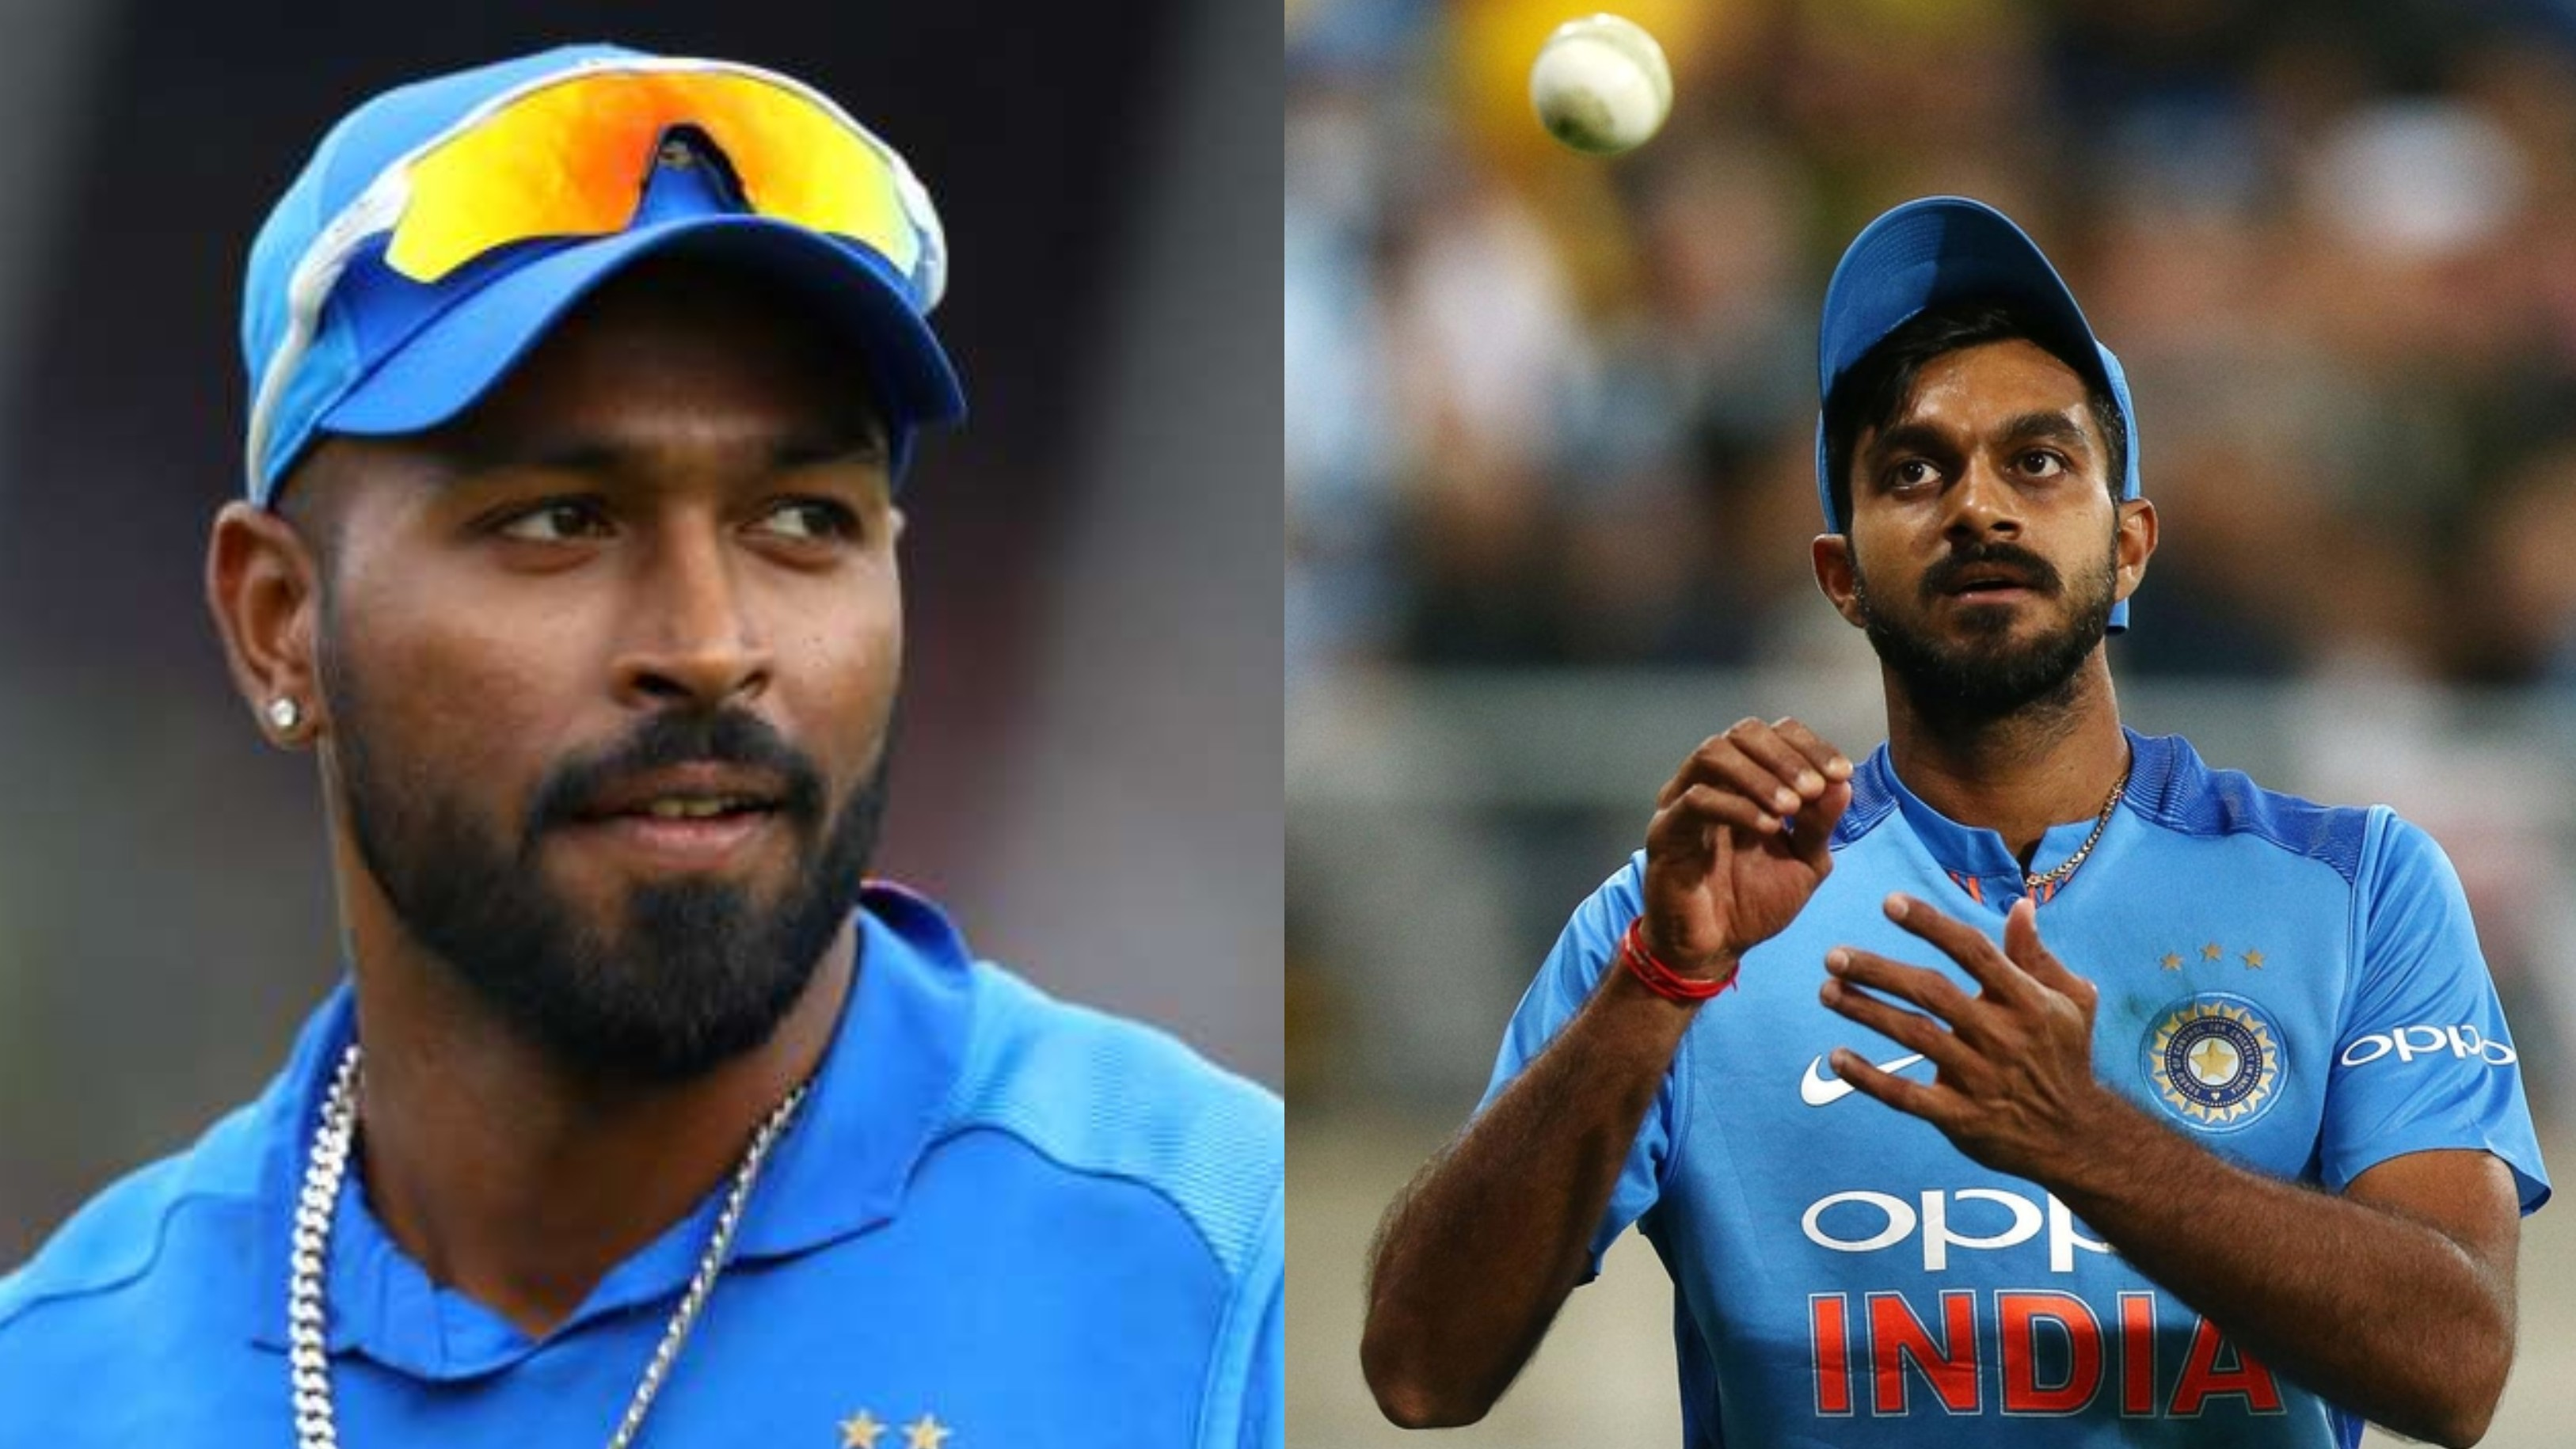 Can't compromise on my game in competition with Hardik Pandya, says Vijay Shankar